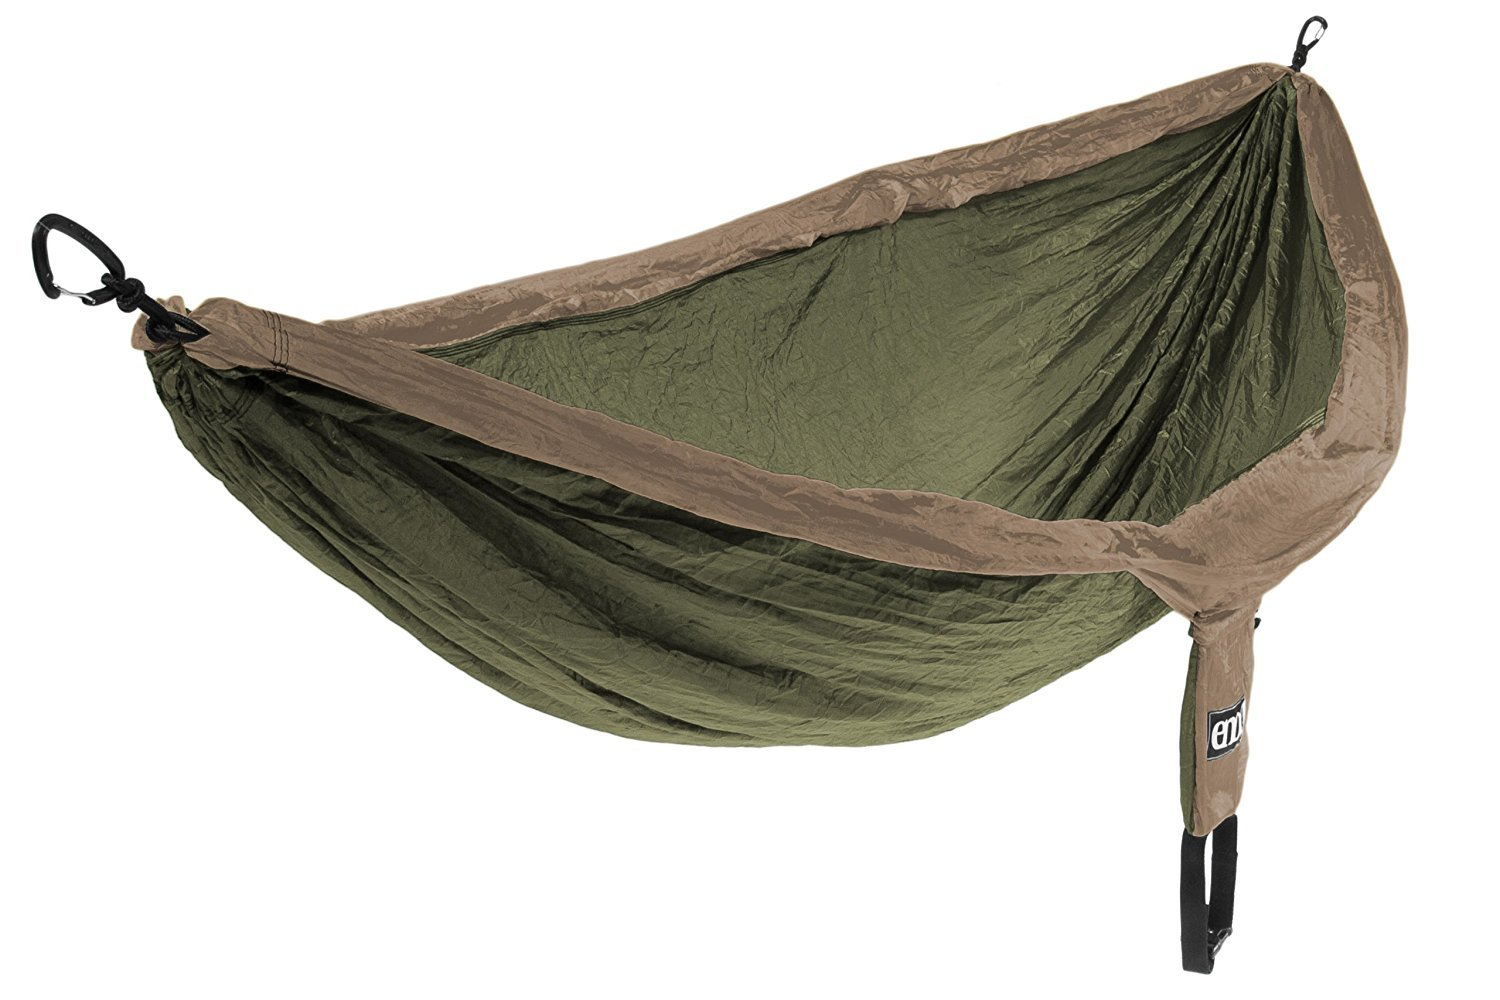 Eagles Nest Outfitters - DoubleNest Hammock with Insect Shield Treatment Khaki/Olive [並行輸入品] B077QH37PB